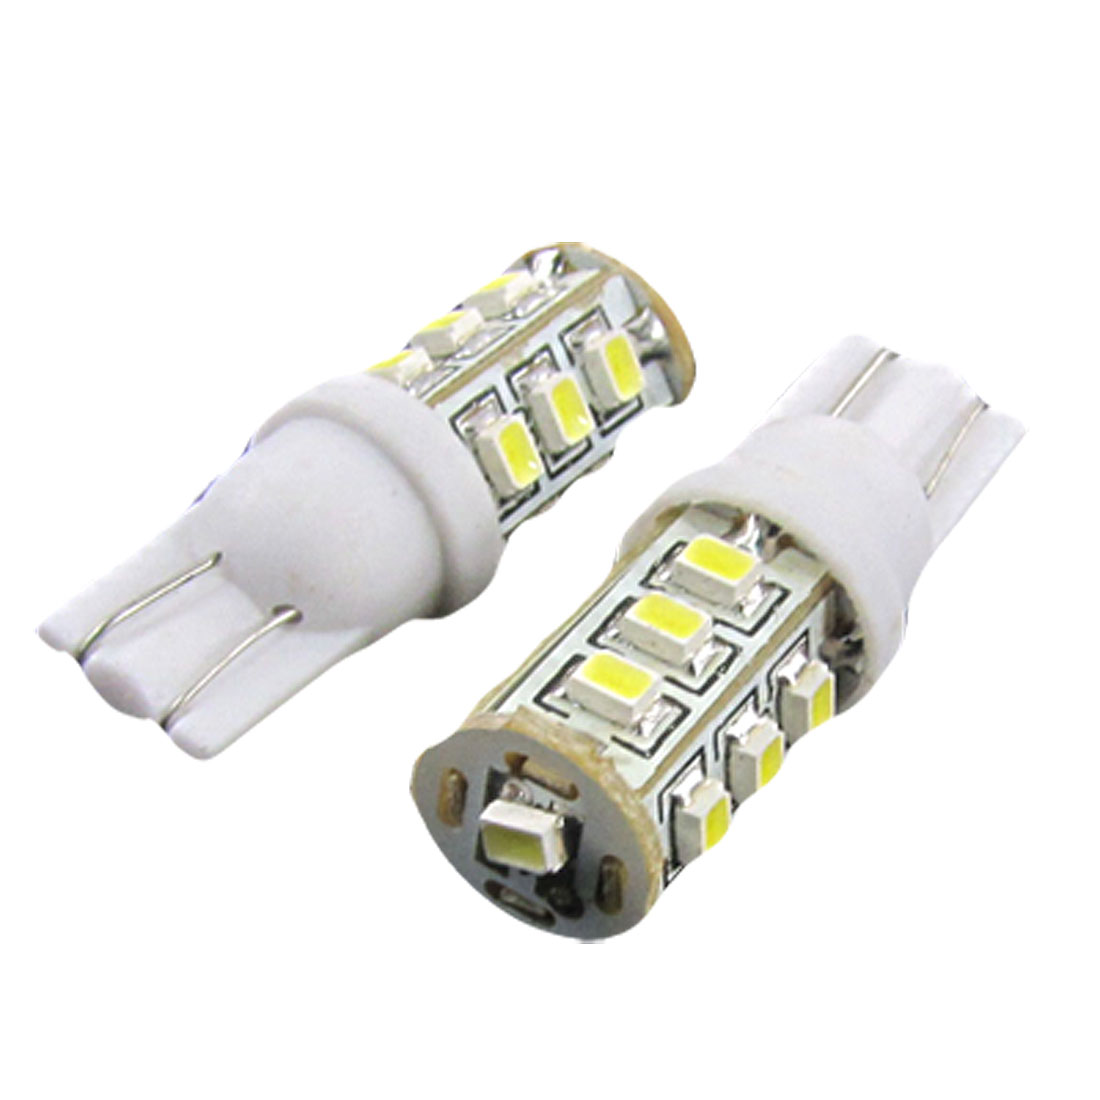 2 x Car T10 W5W 13 1210 SMD LED Wedge Bulbs White Side Signal Indicator Lights